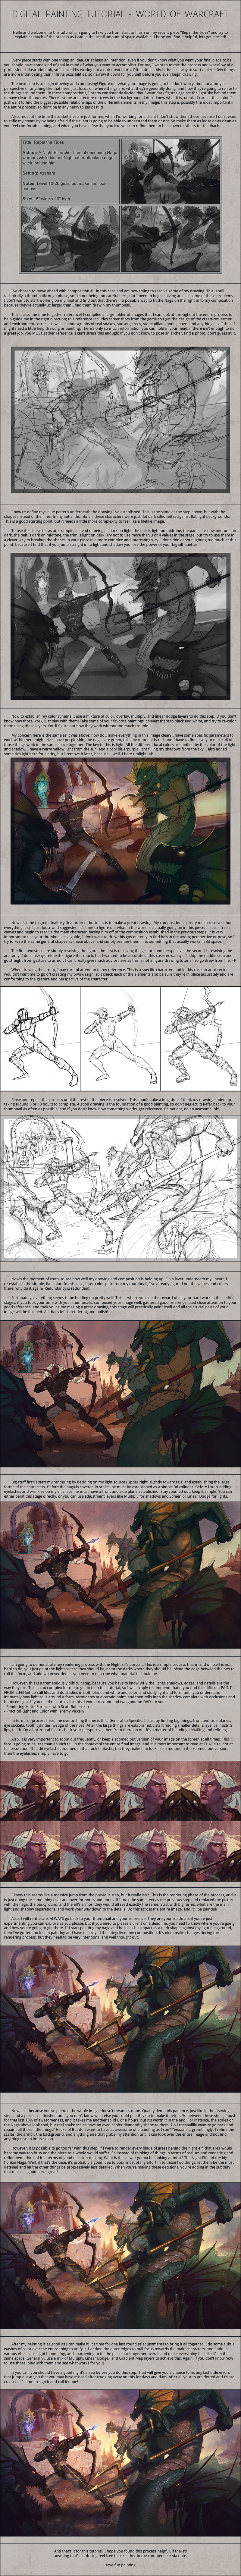 Digital Painting Tutorial - World of Warcraft by Andantonius